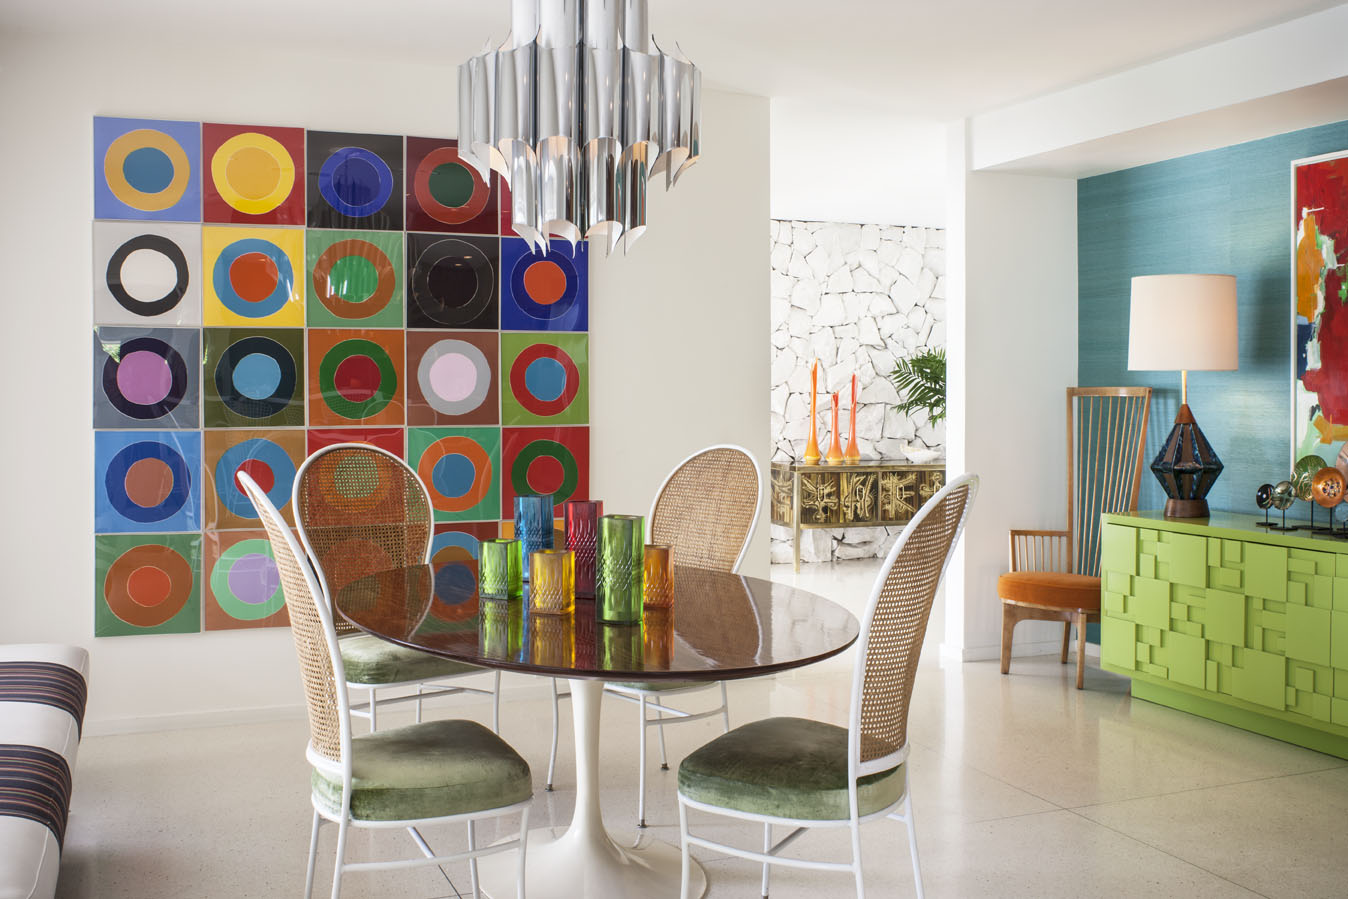 A vibrant midcentury-inspired dining room in Thunderbird Heights image credit: Grey Crawford